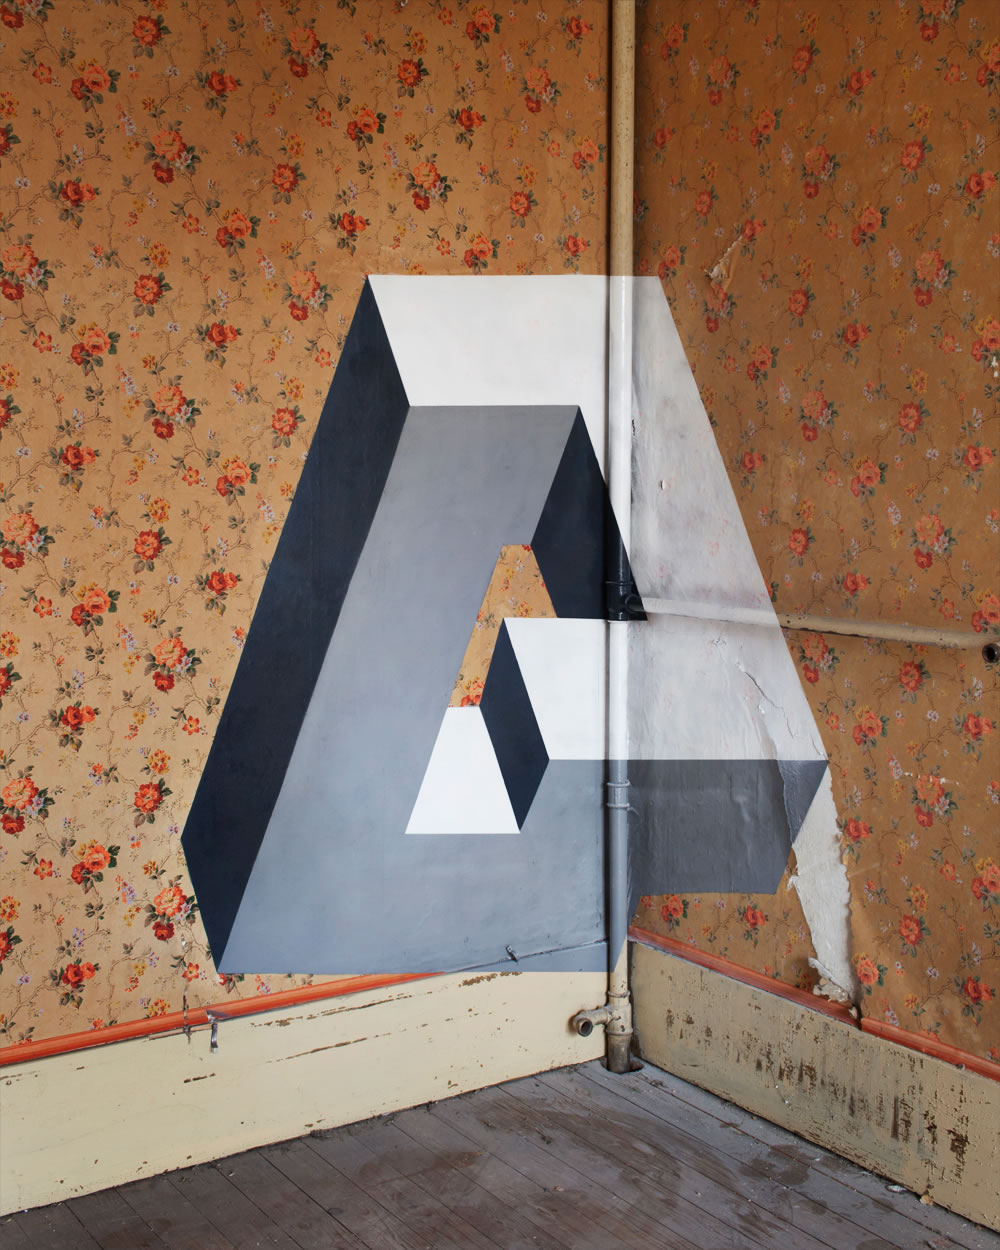 Anamorphic geometric art by Fanette G 5